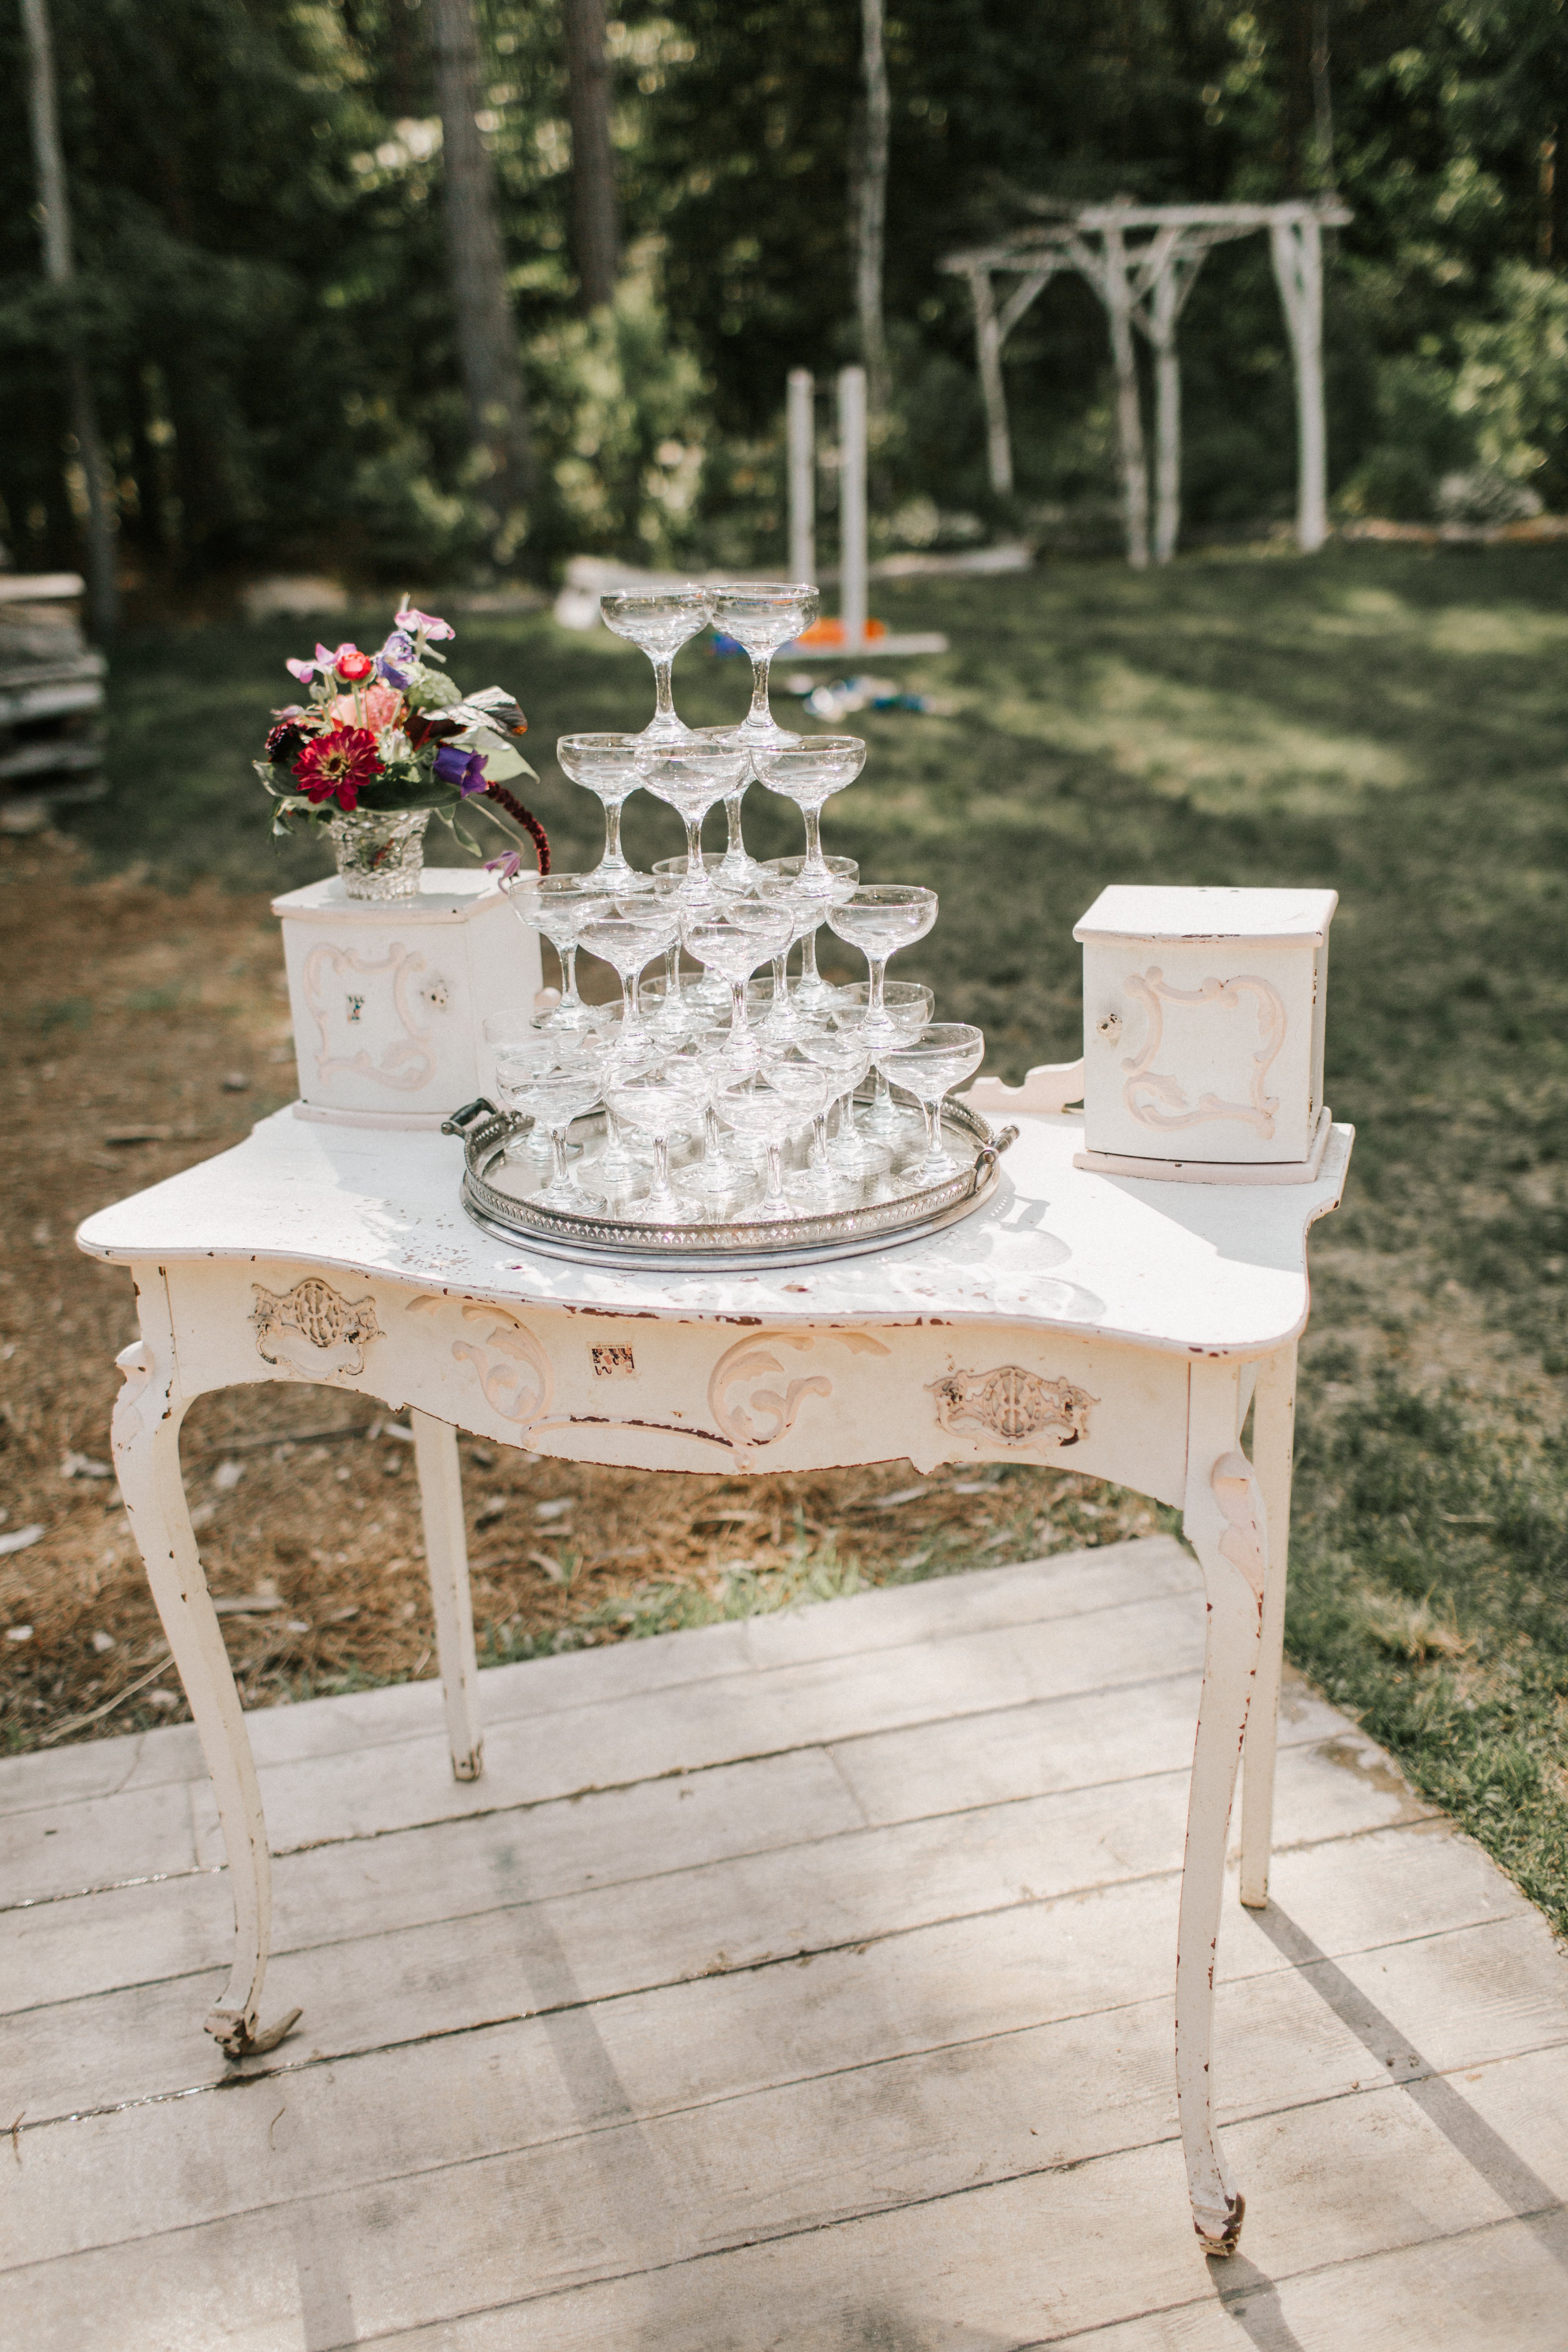 Champagne tower at Hidden Pond Wedding in Kennebunkport, Maine